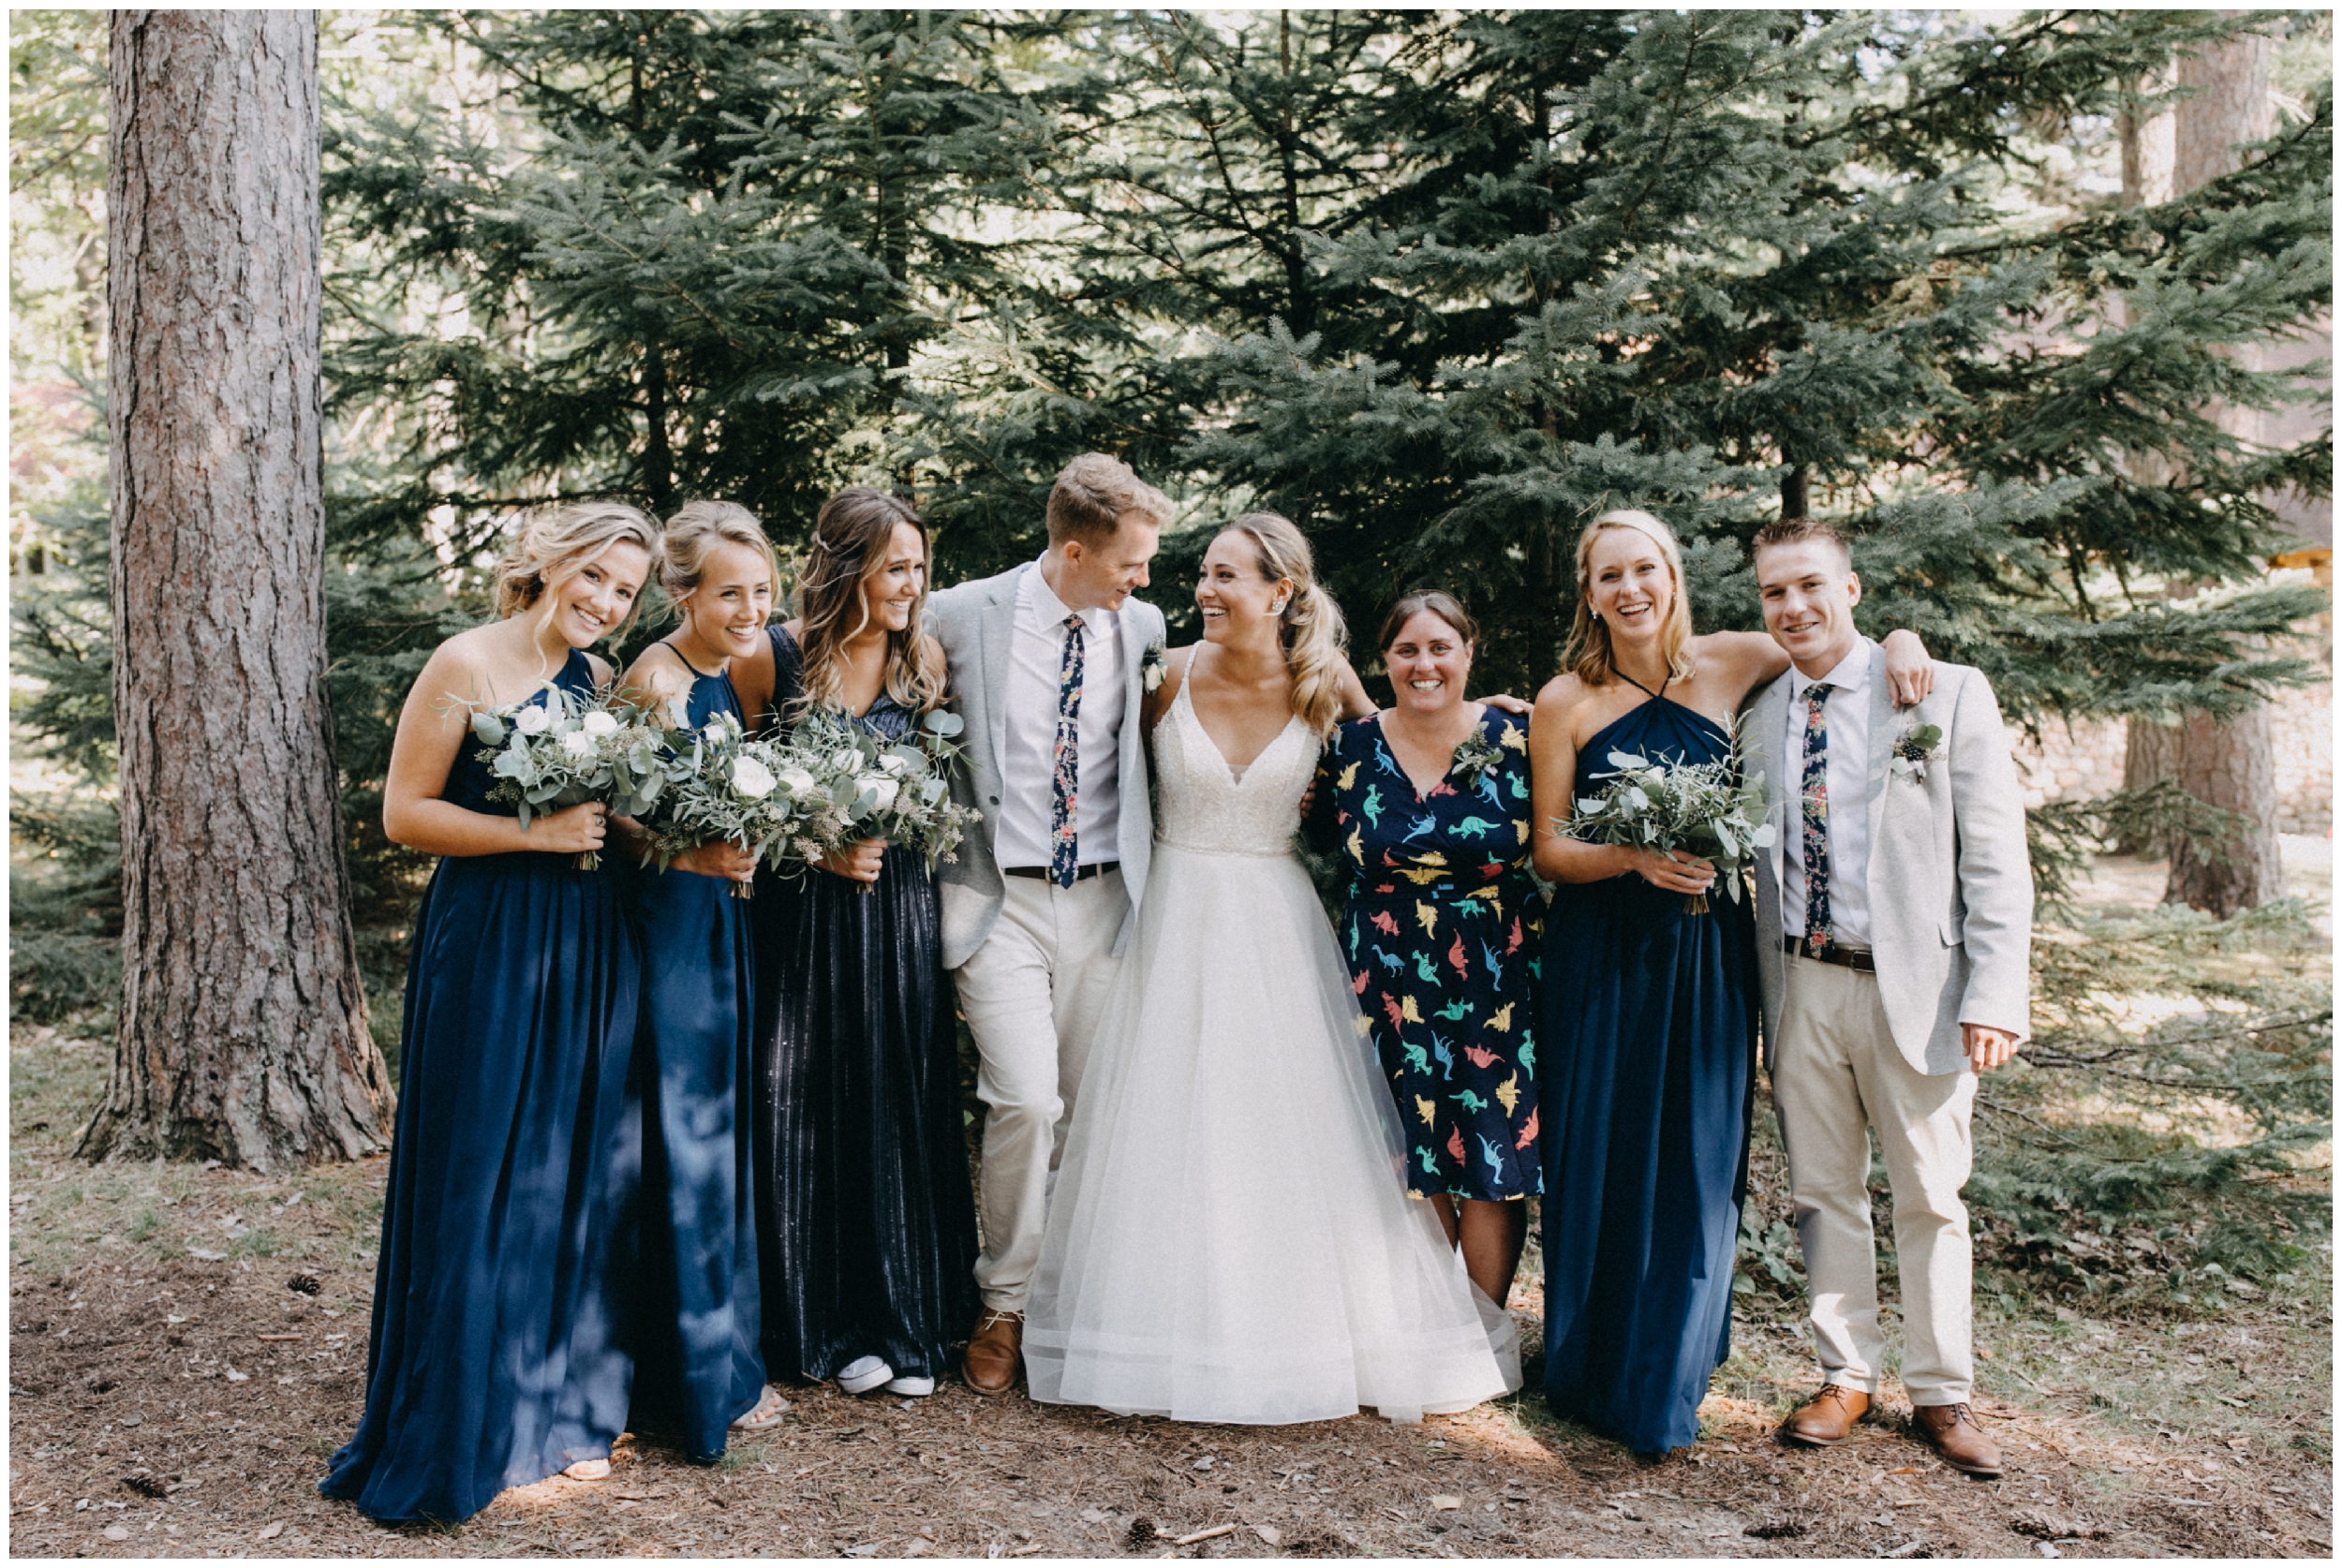 Casual and candid family portrait at Camp Foley wedding photographed by Britt DeZeeuw